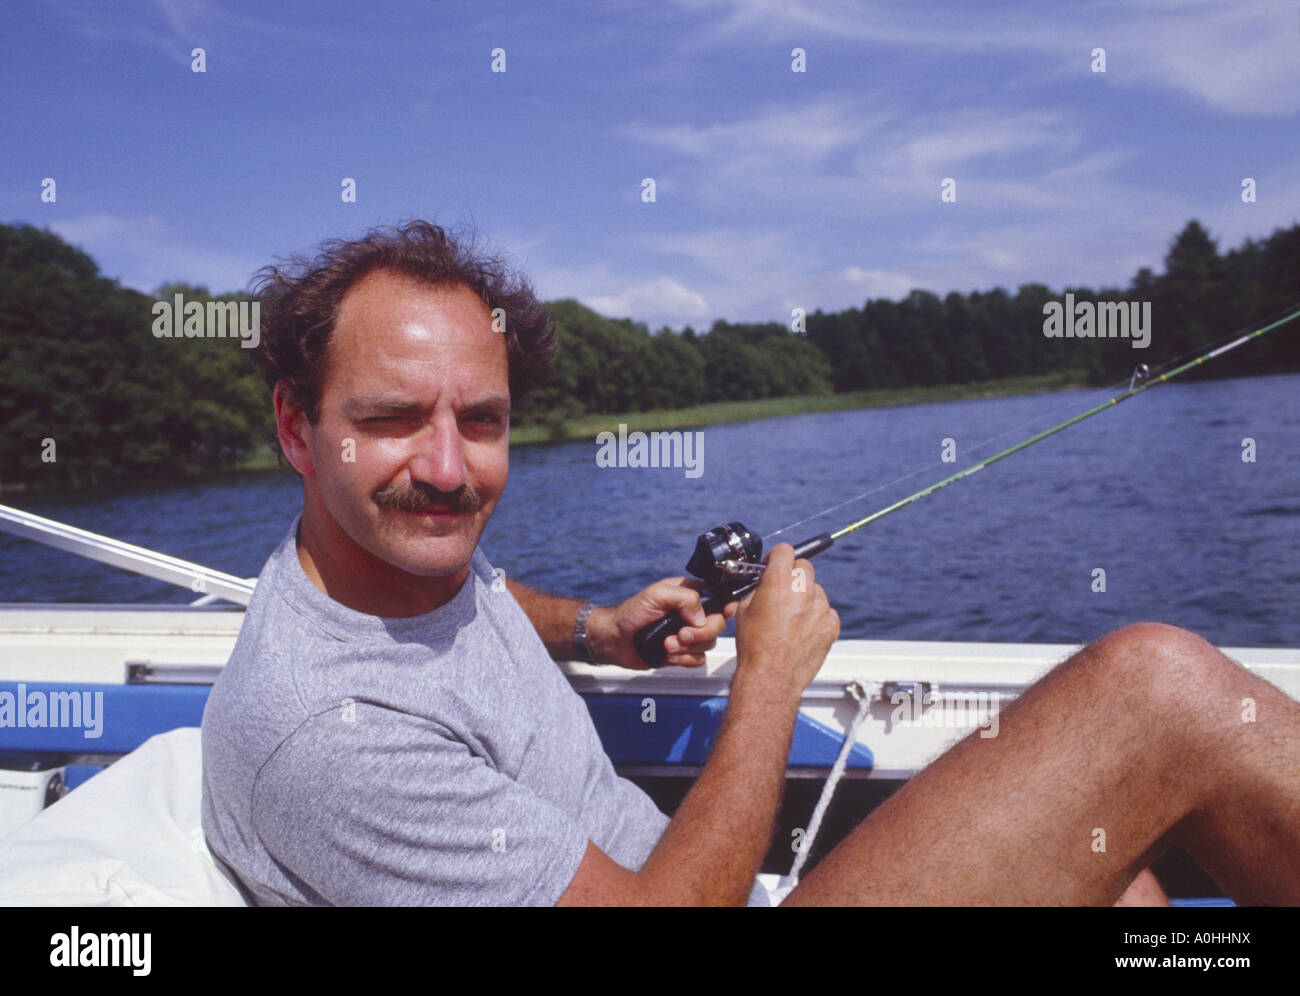 man fishing in boat using inexpensive rod and reel - Stock Image